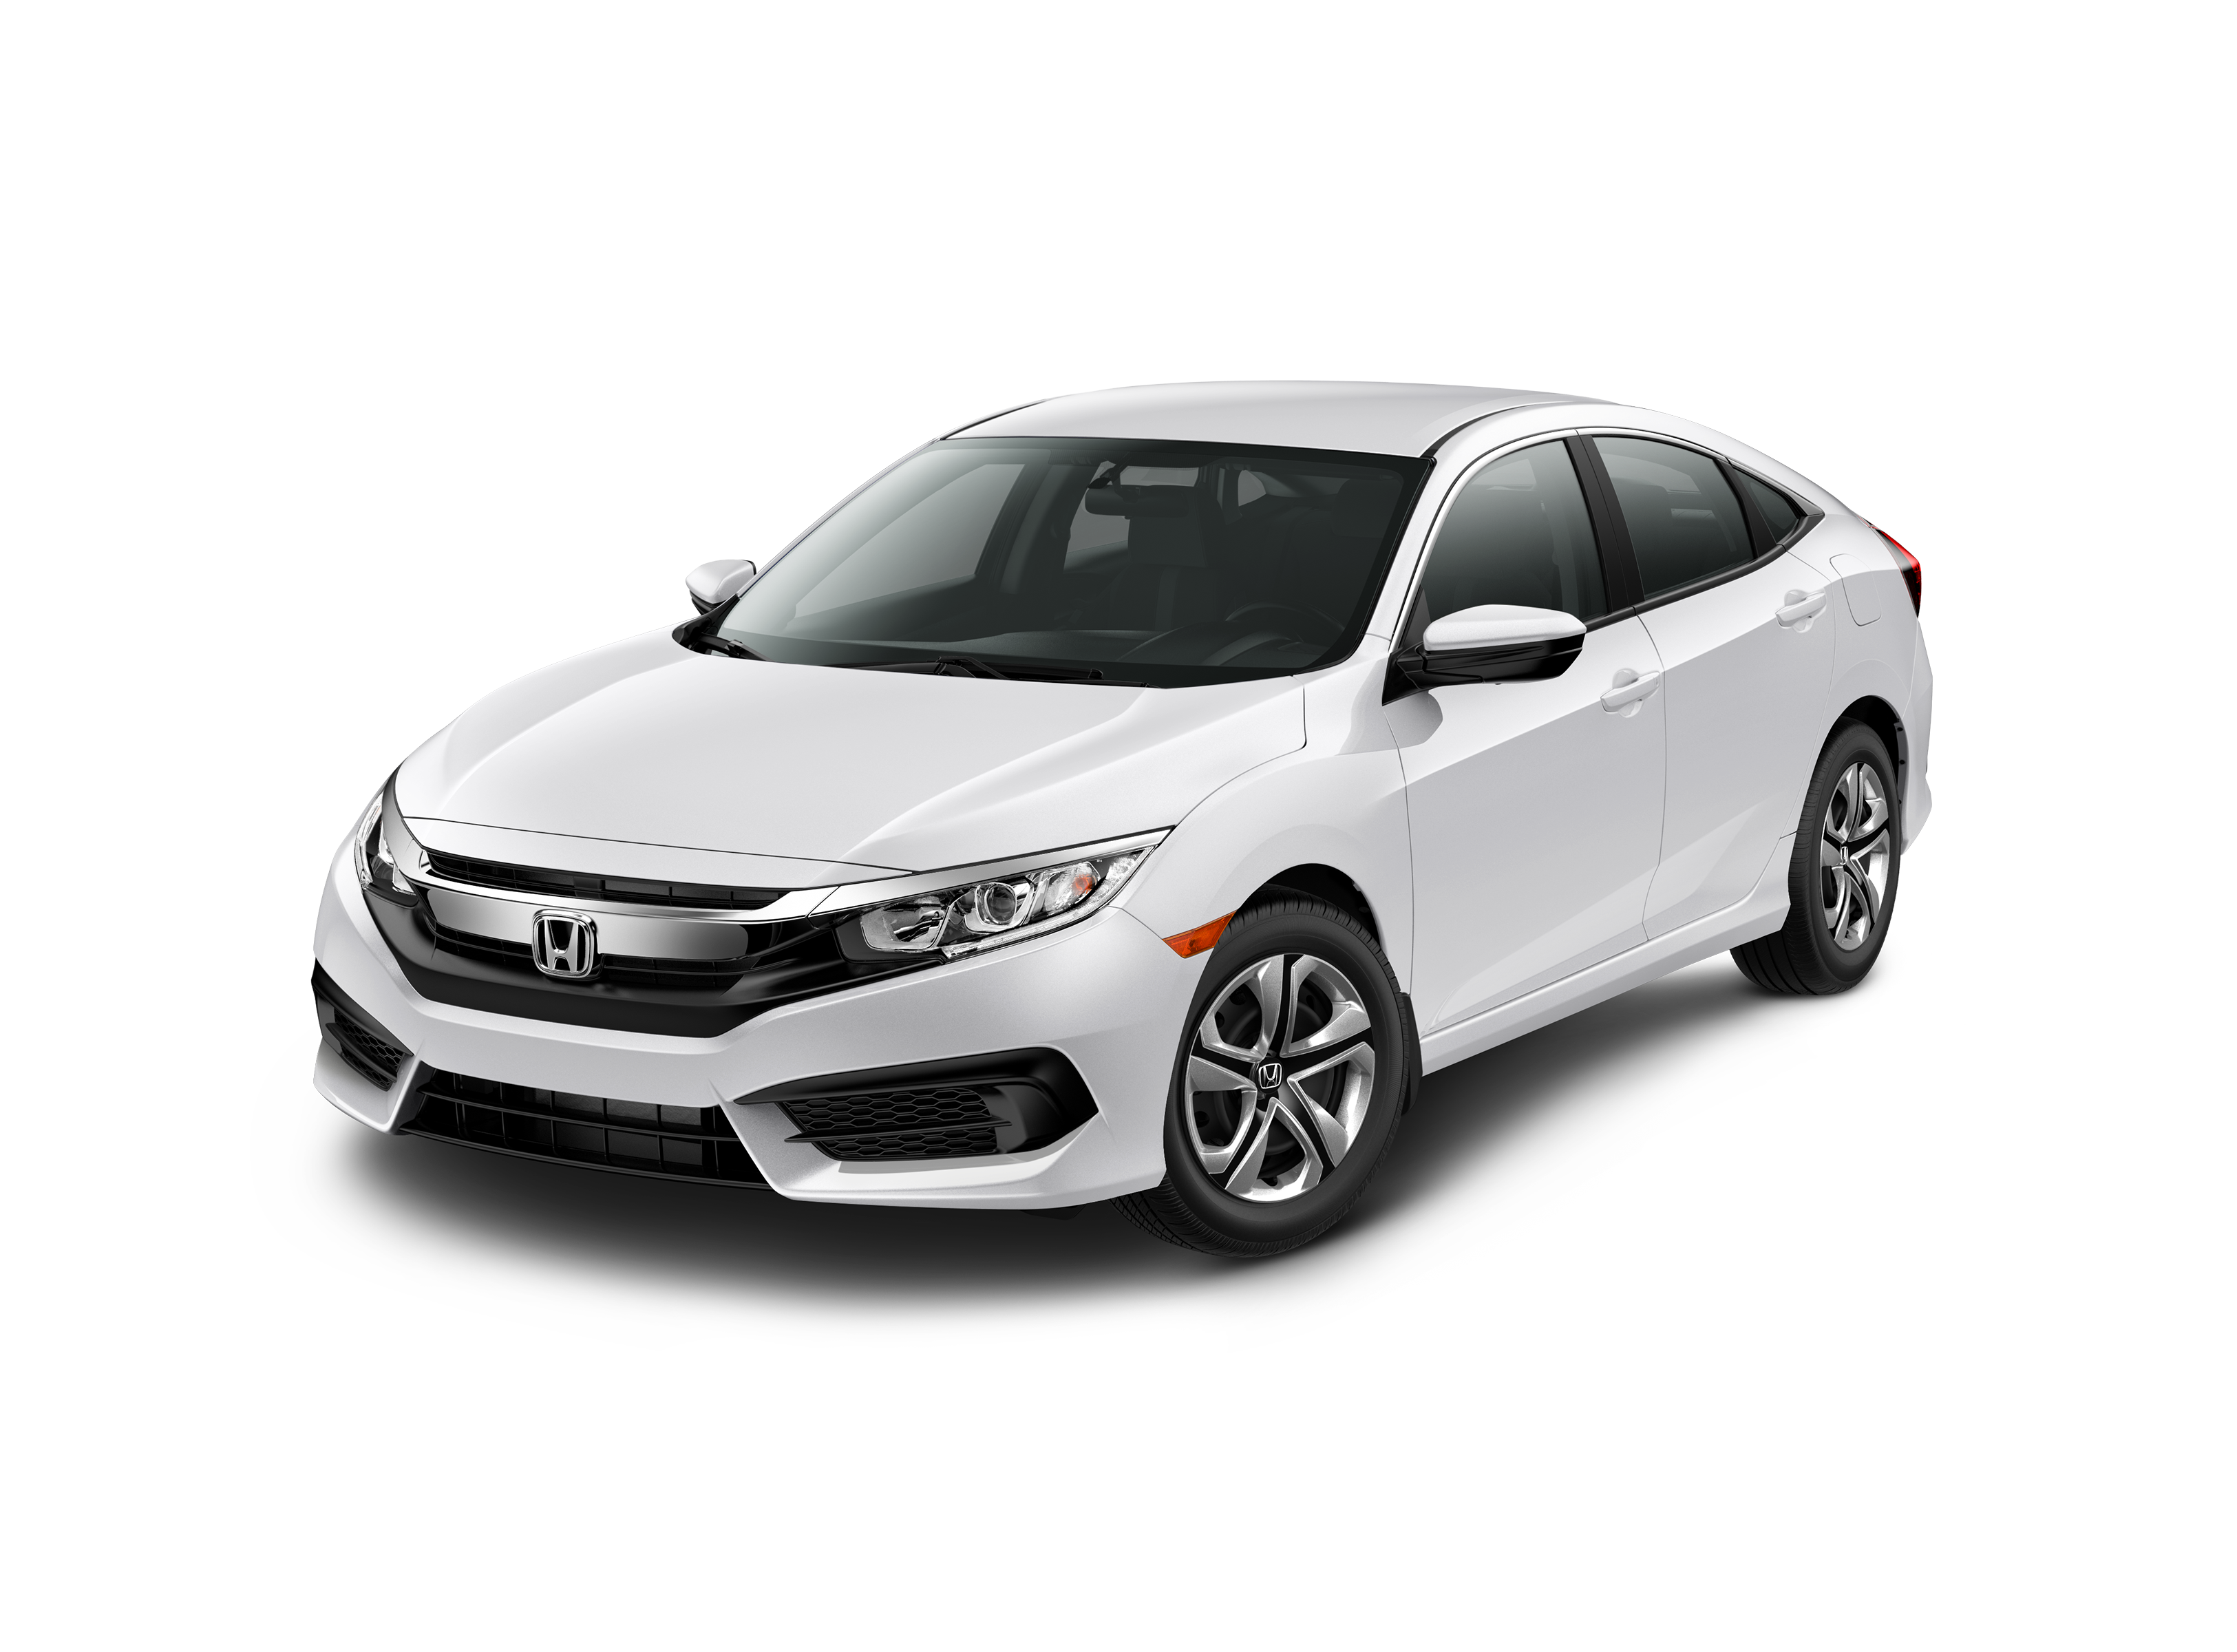 the lease watch staruptalent klein car difference specials com honda